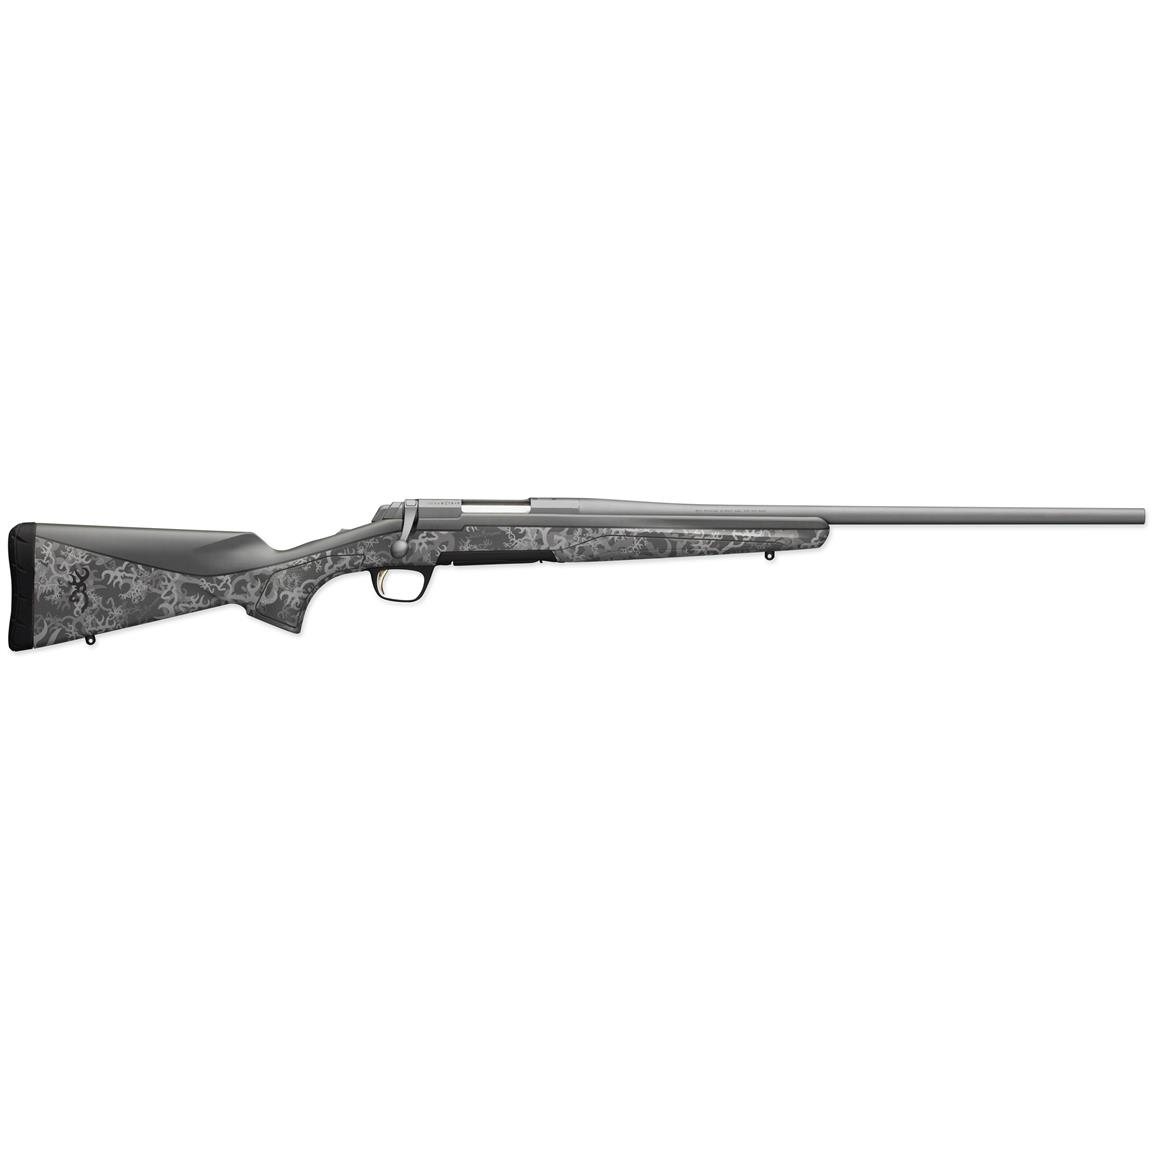 Browning X-Bolt Short Action, .308 Winchester, Centerfire, 035361218, 023614045205, Tactical Gray and 3D Buckthorn Camo Finishes